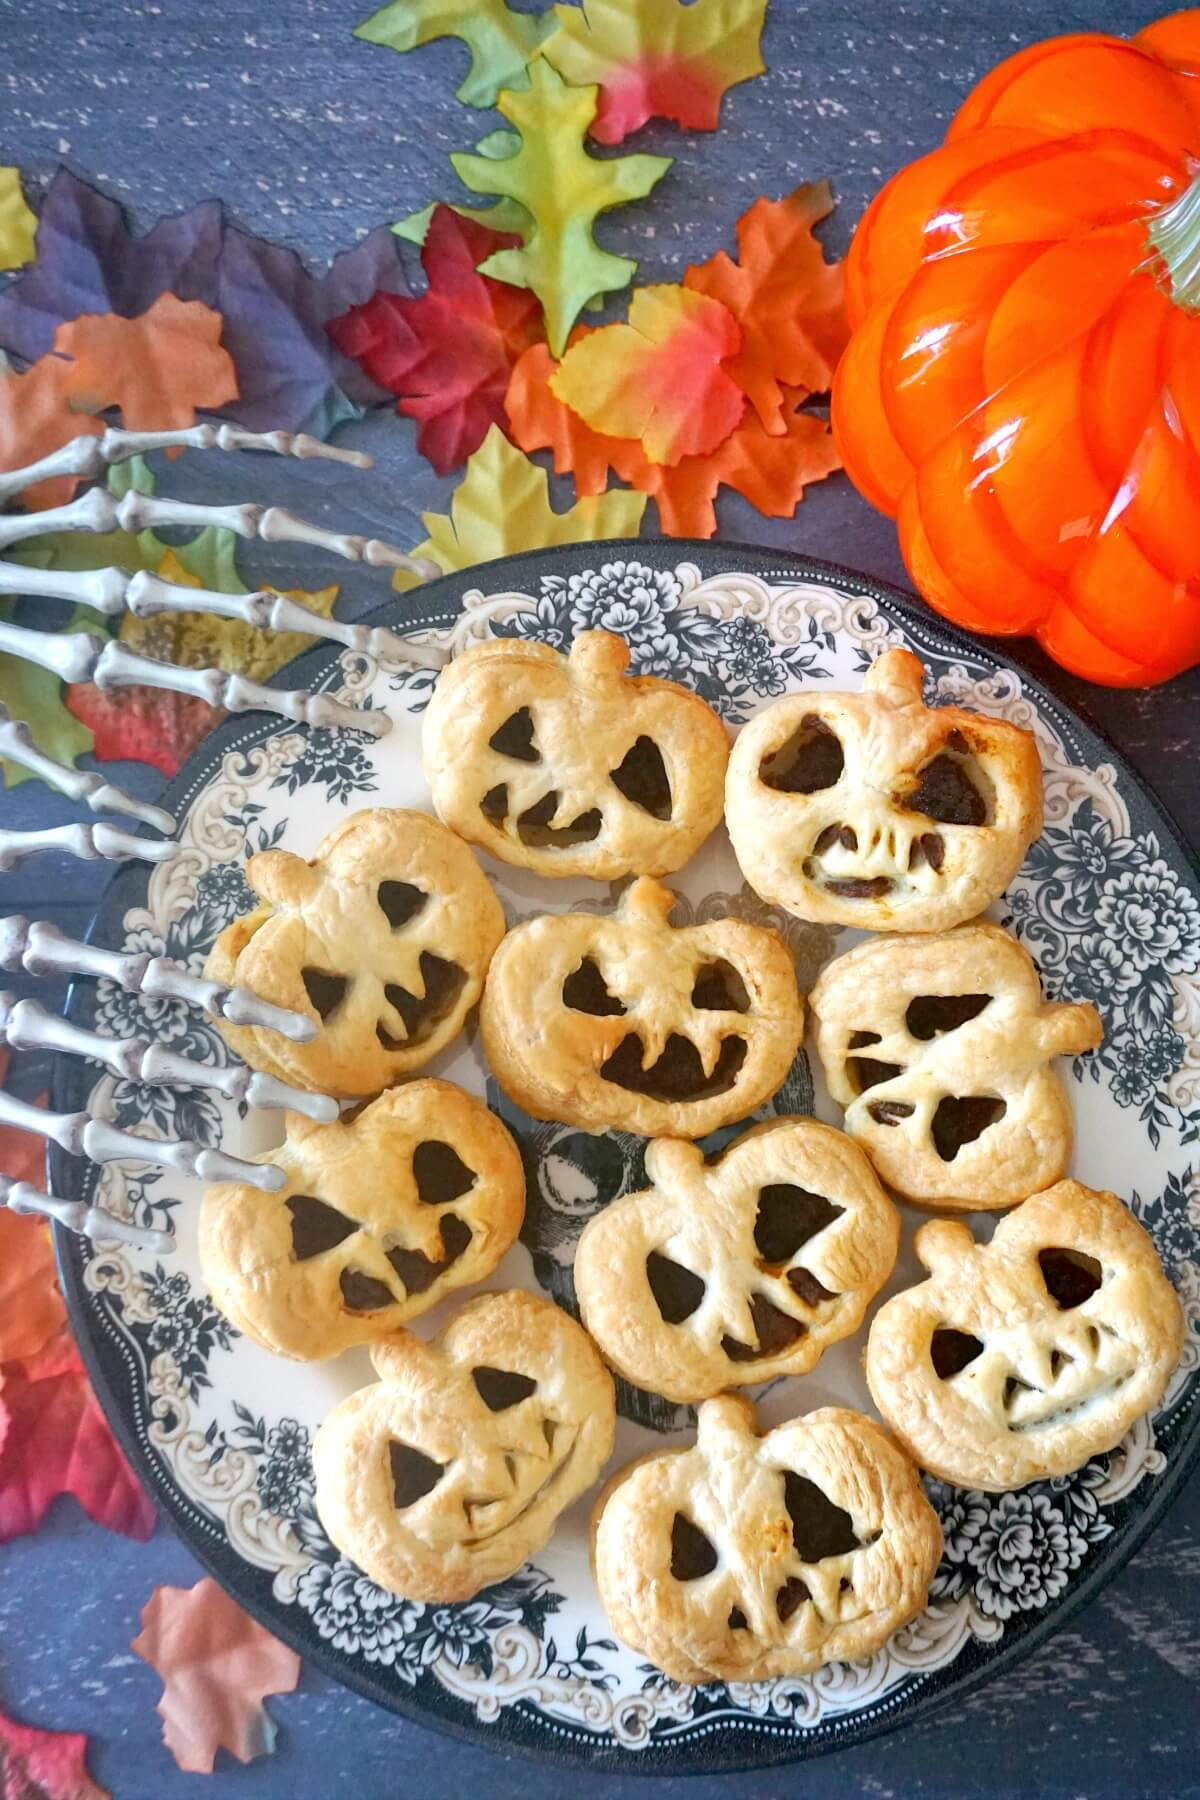 Overhead shoot of a plate with pumpkin hand pies with Halloween decorations around